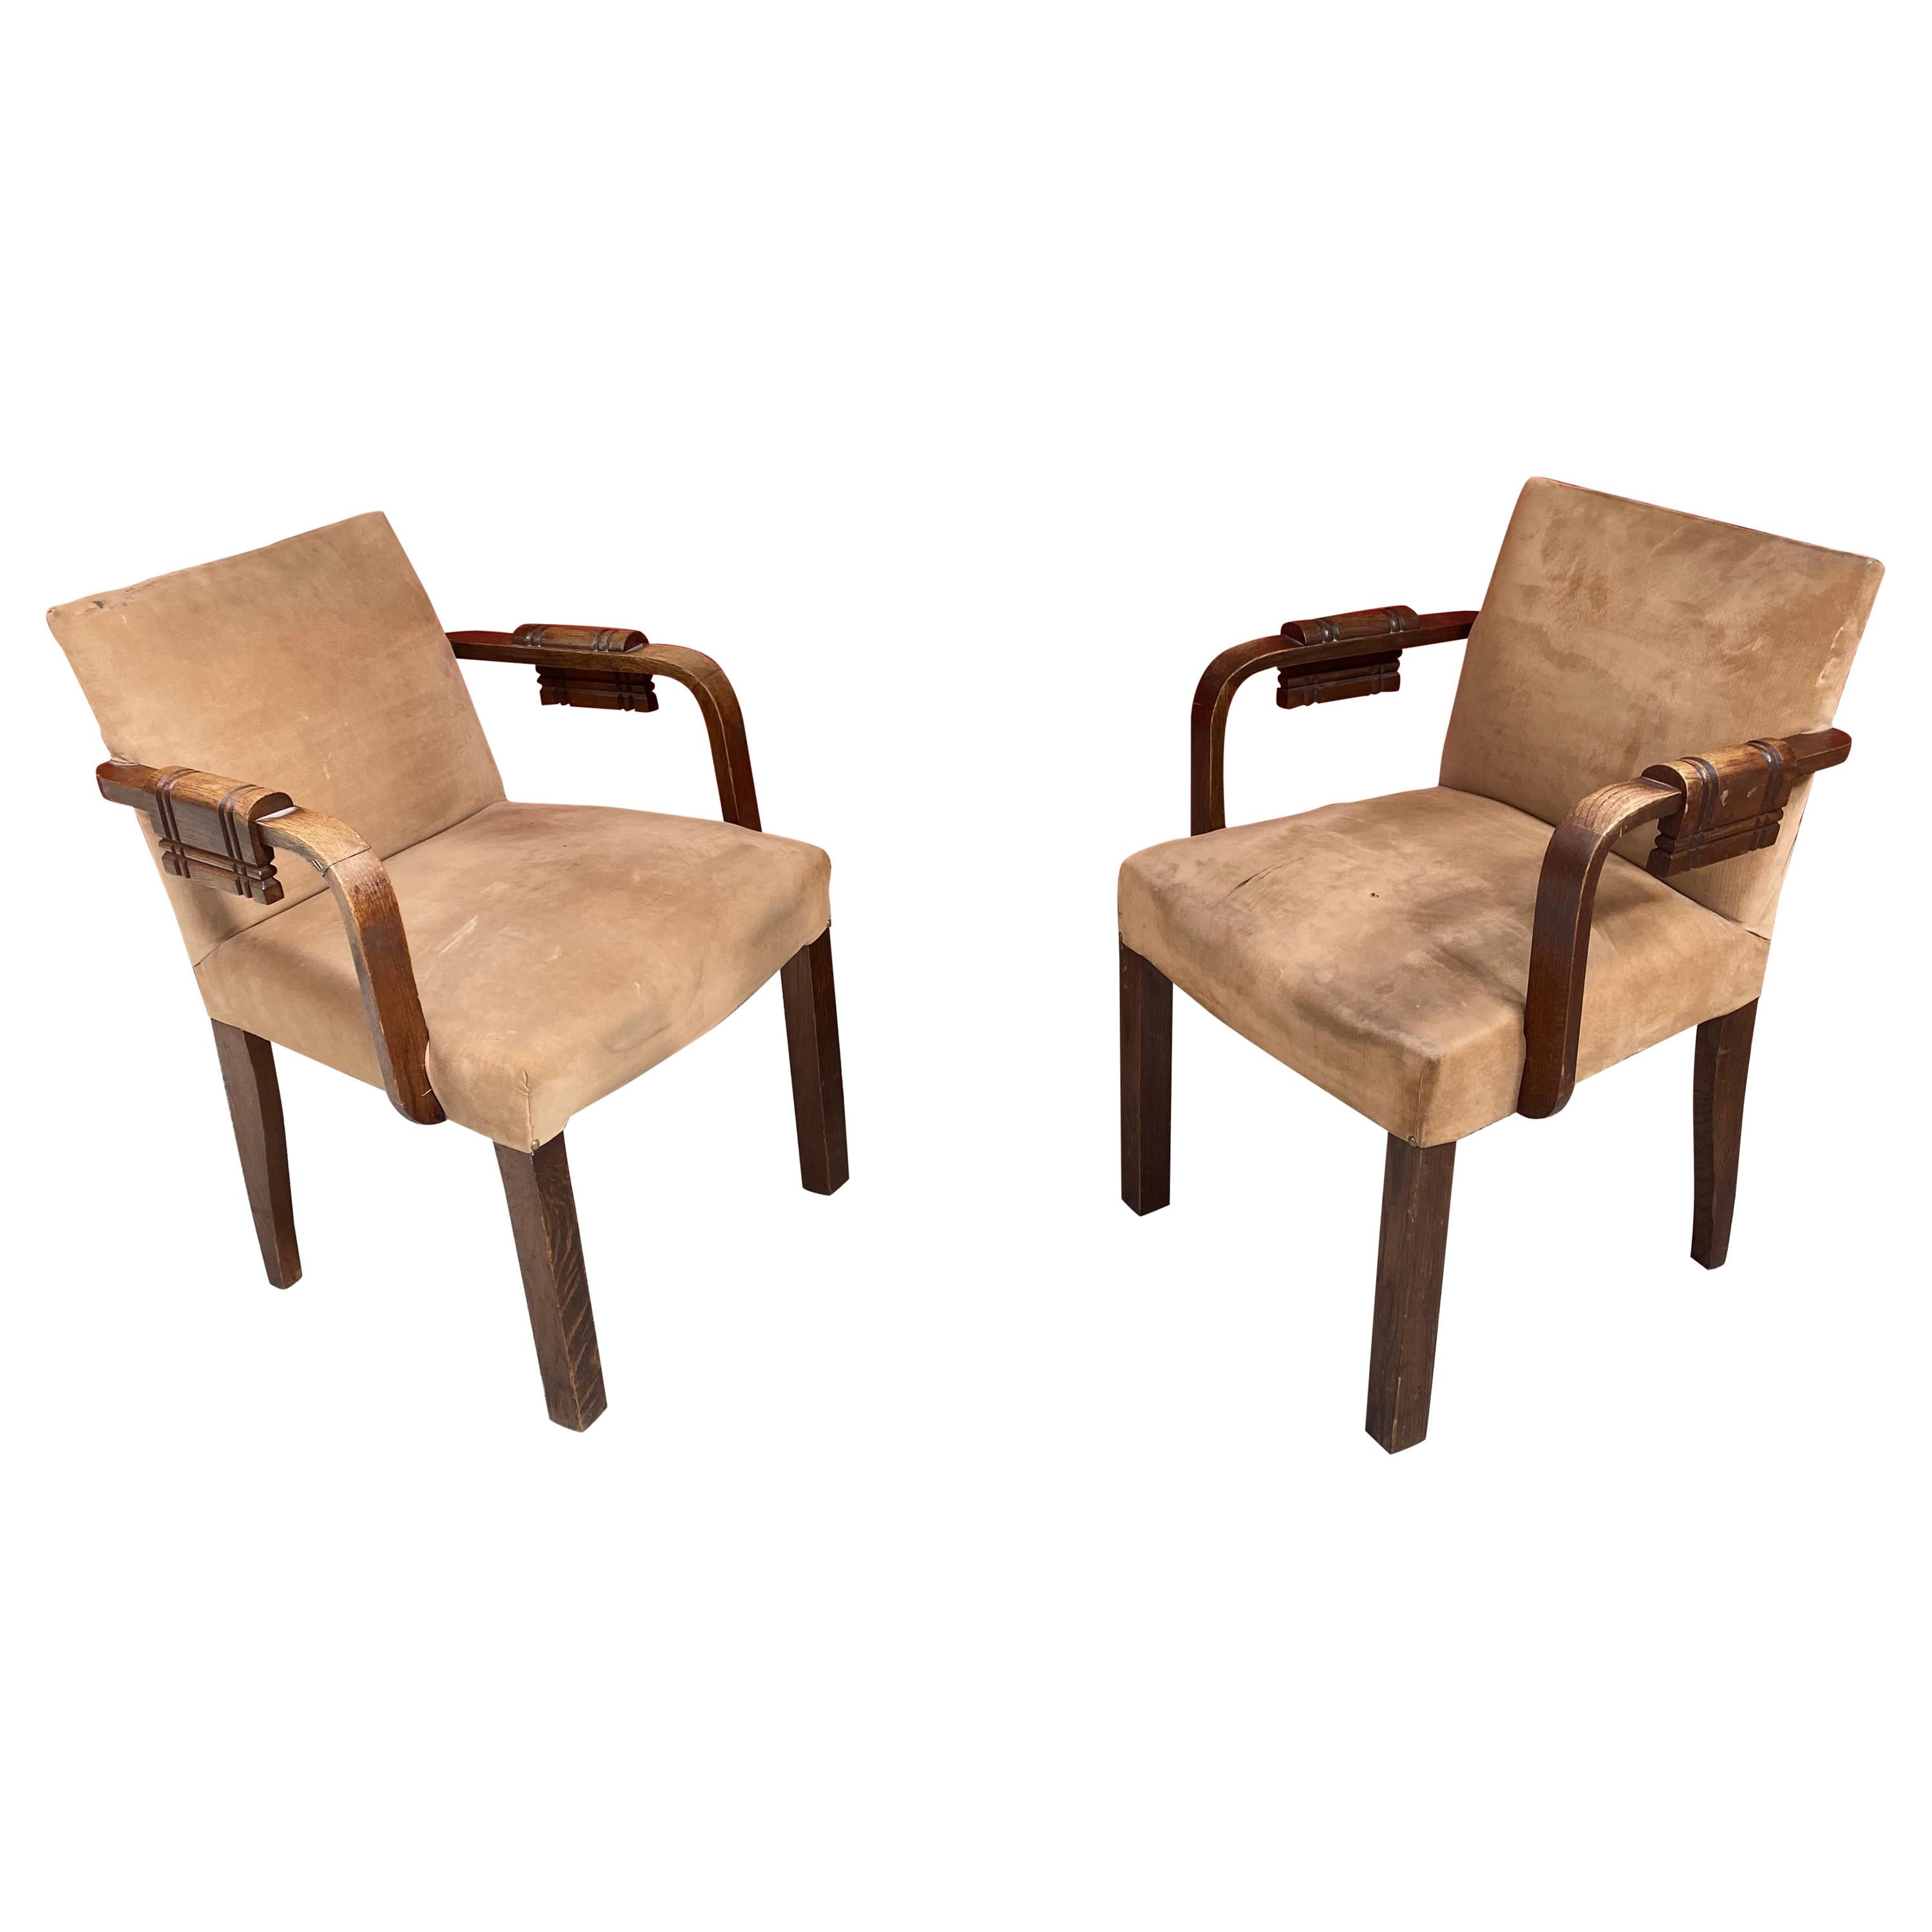 Charles Dudouyt, 2 Art Deco Oak and Leather Chairs, circa 1940